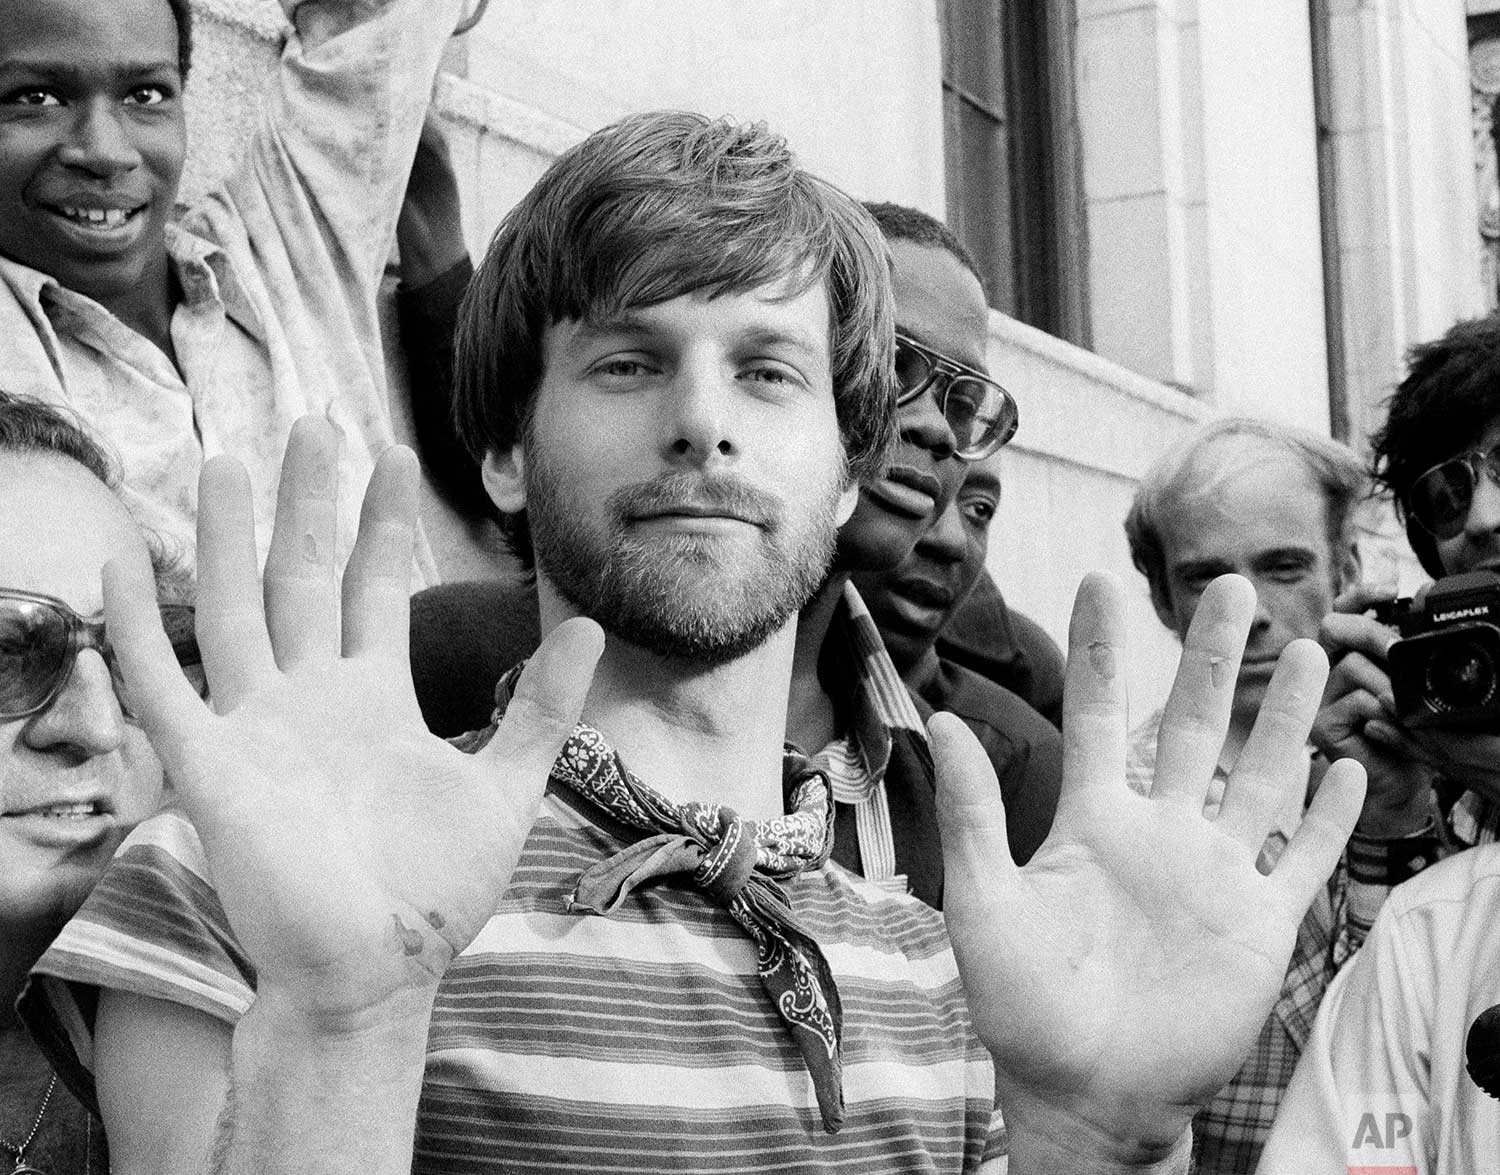 George Willig displays blistered hands after climbing to the top of the south tower of the World Trade Center in New York, May 26, 1977. Willig used a modified climbing rig to pull himself up the sheer side of the building hand over hand. (AP Photo/Dan Grossi)